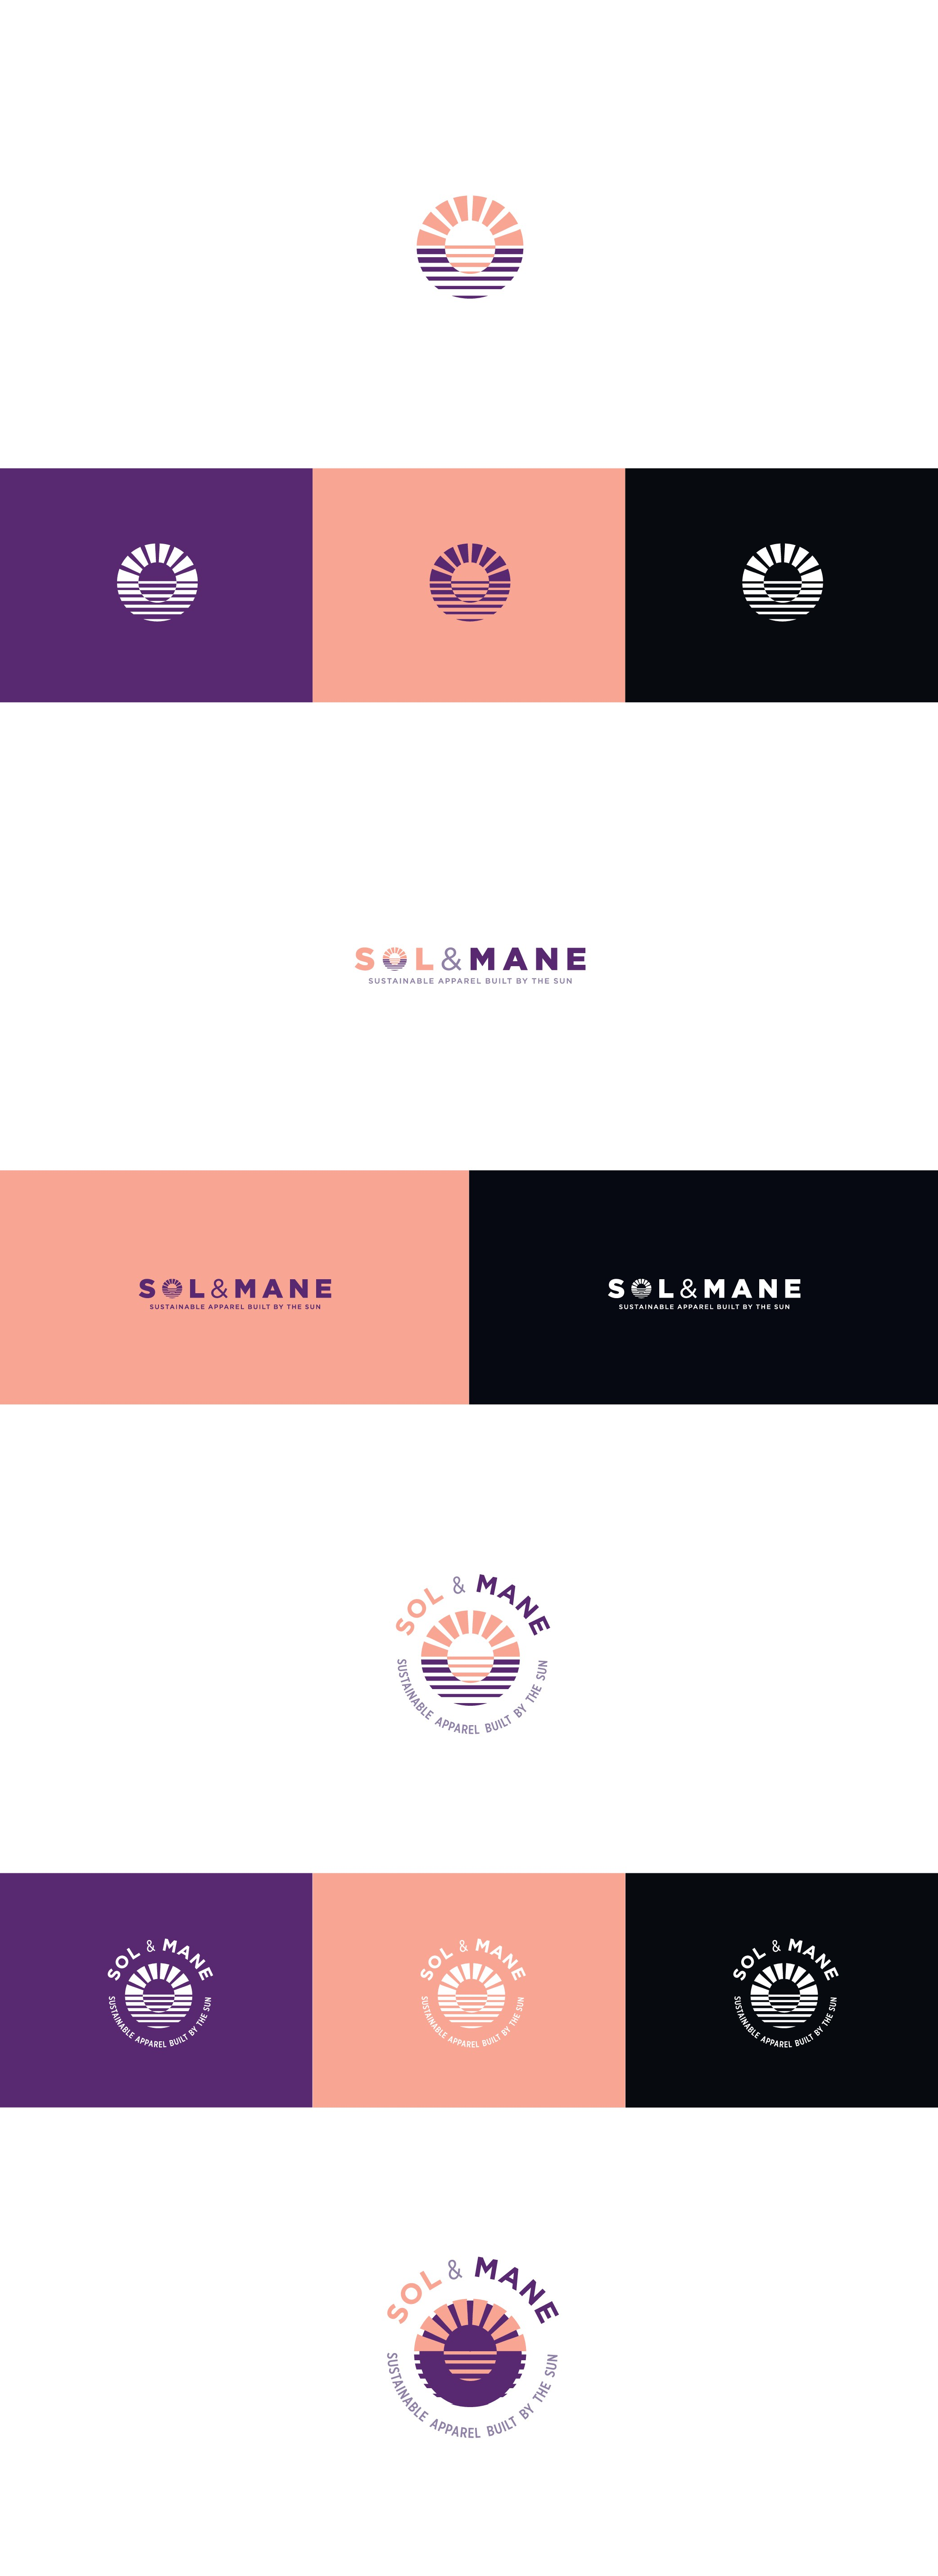 Yoga brand Sol and Mane needs your creative vision to launch